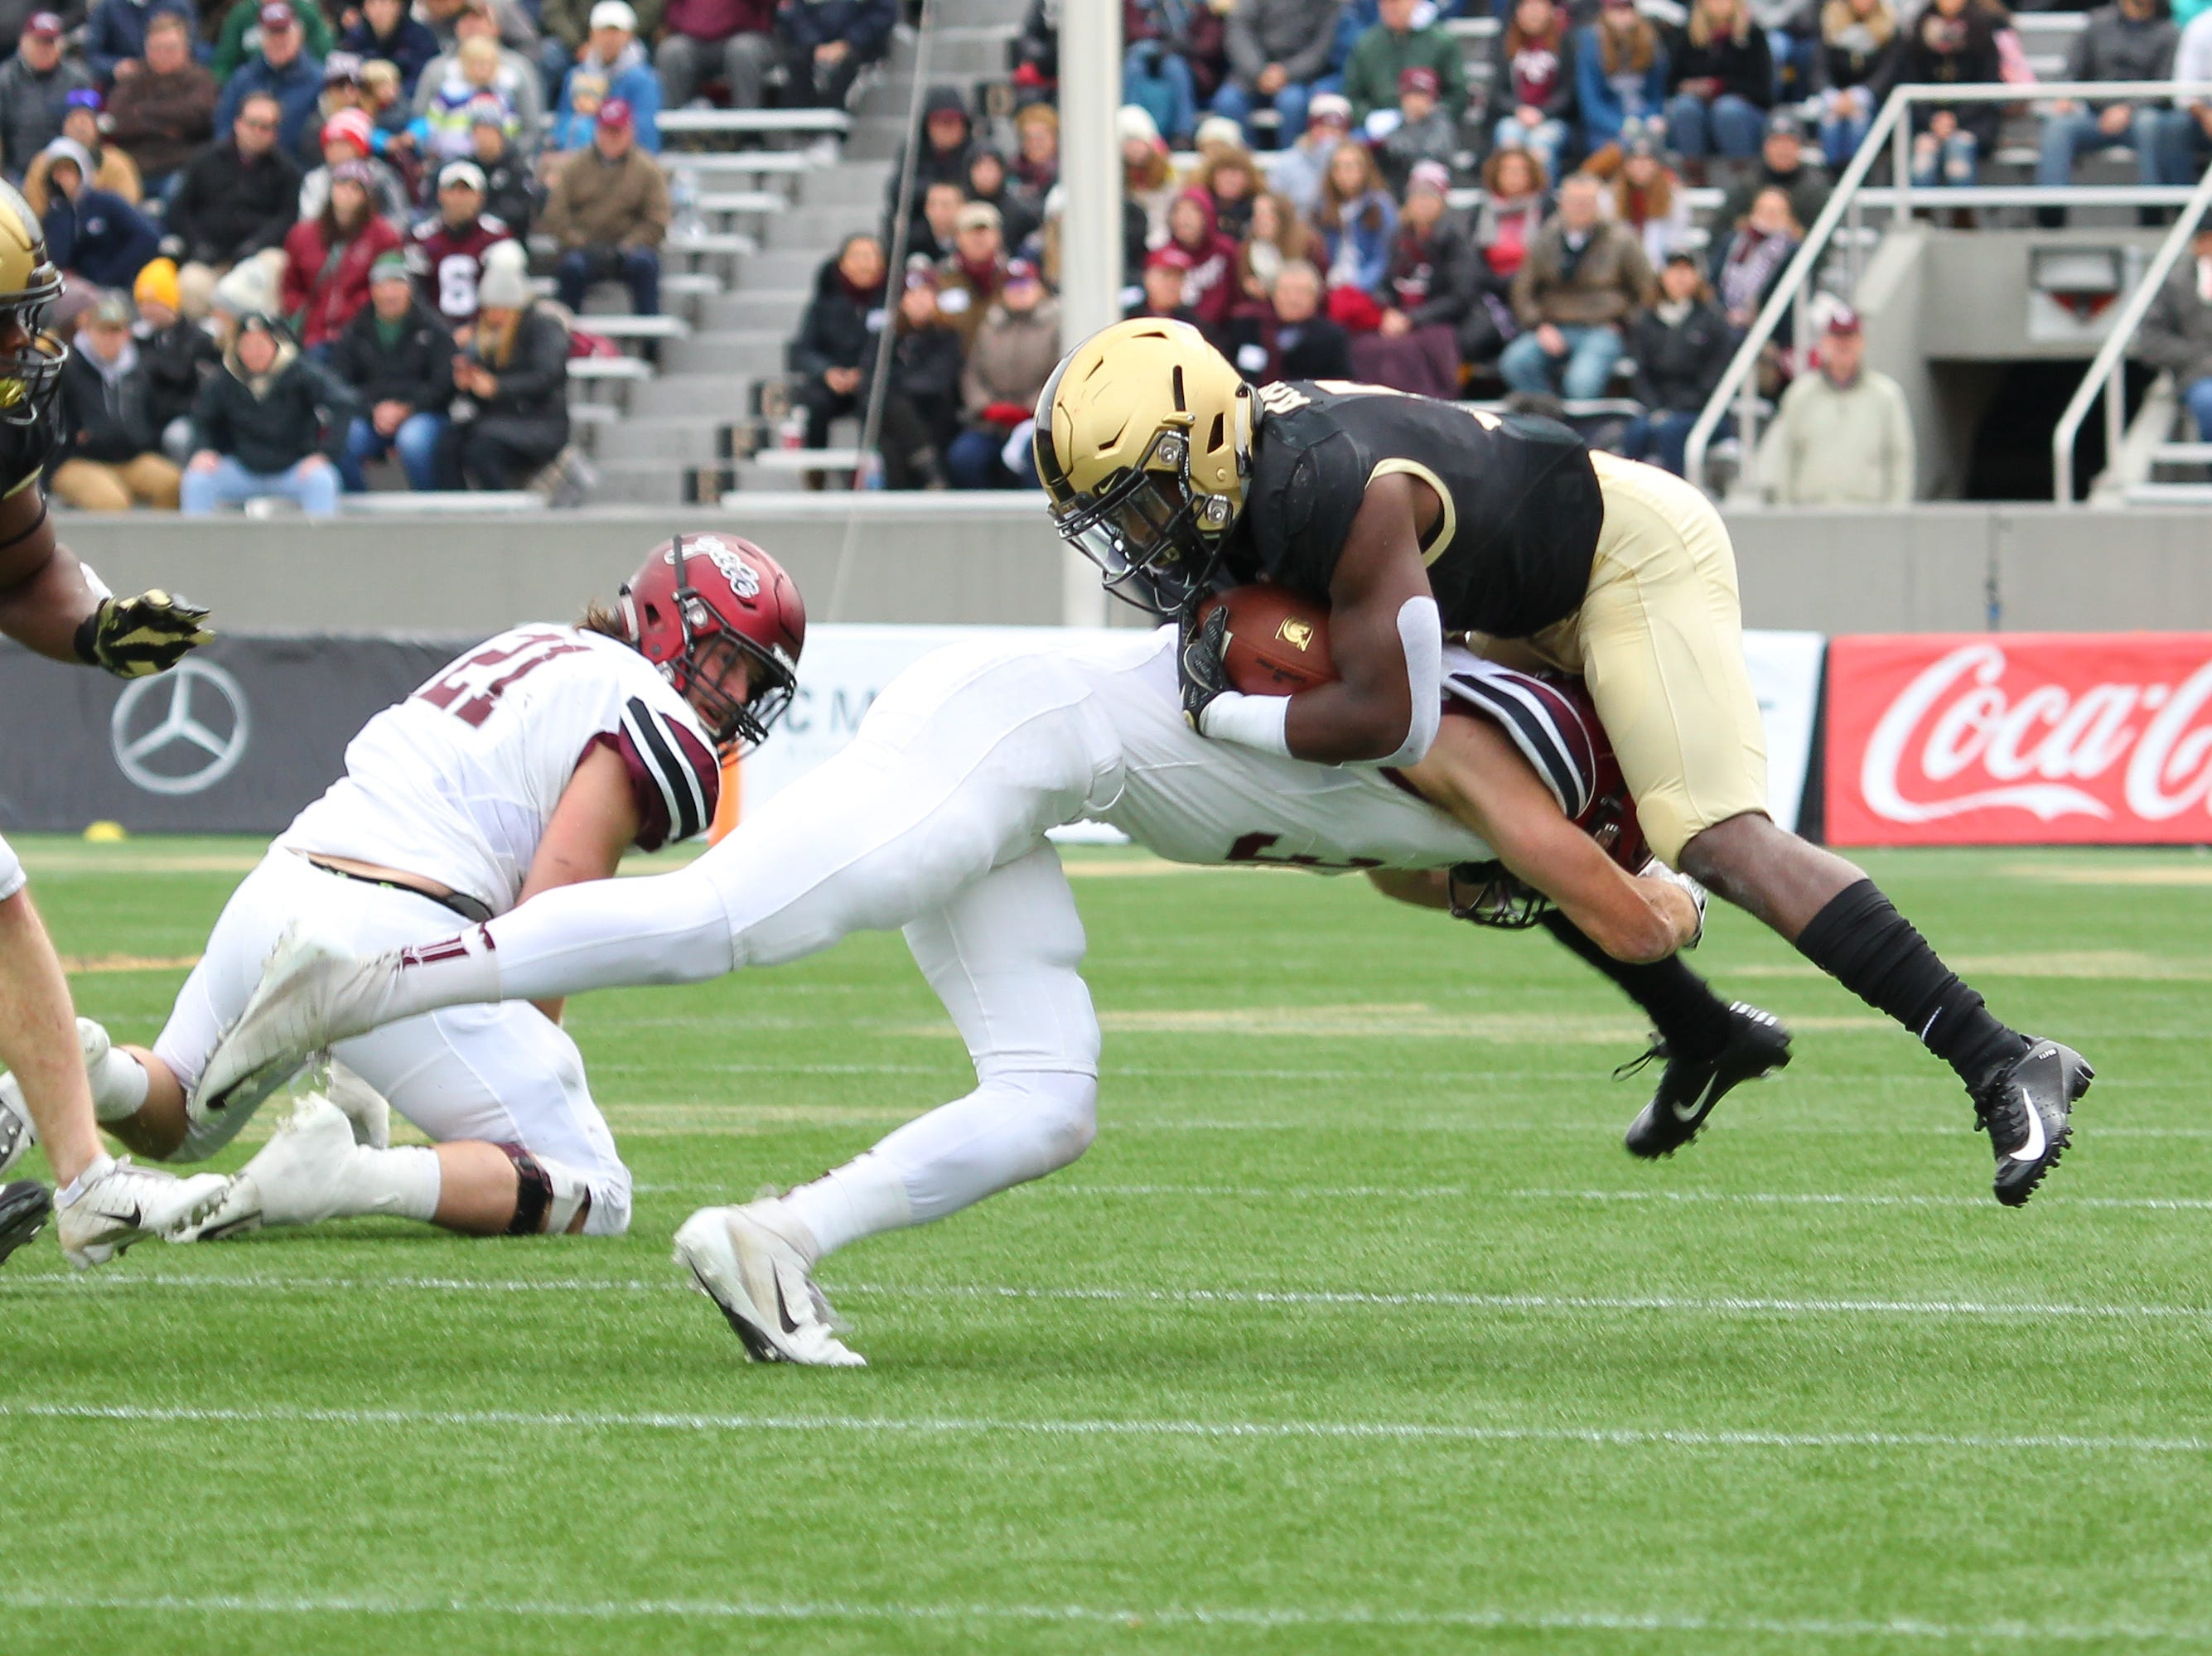 Maine-Endwell grad Alec Wisniewski makes a tackle in Colgate's 28-14 loss to Army on Nov. 17.